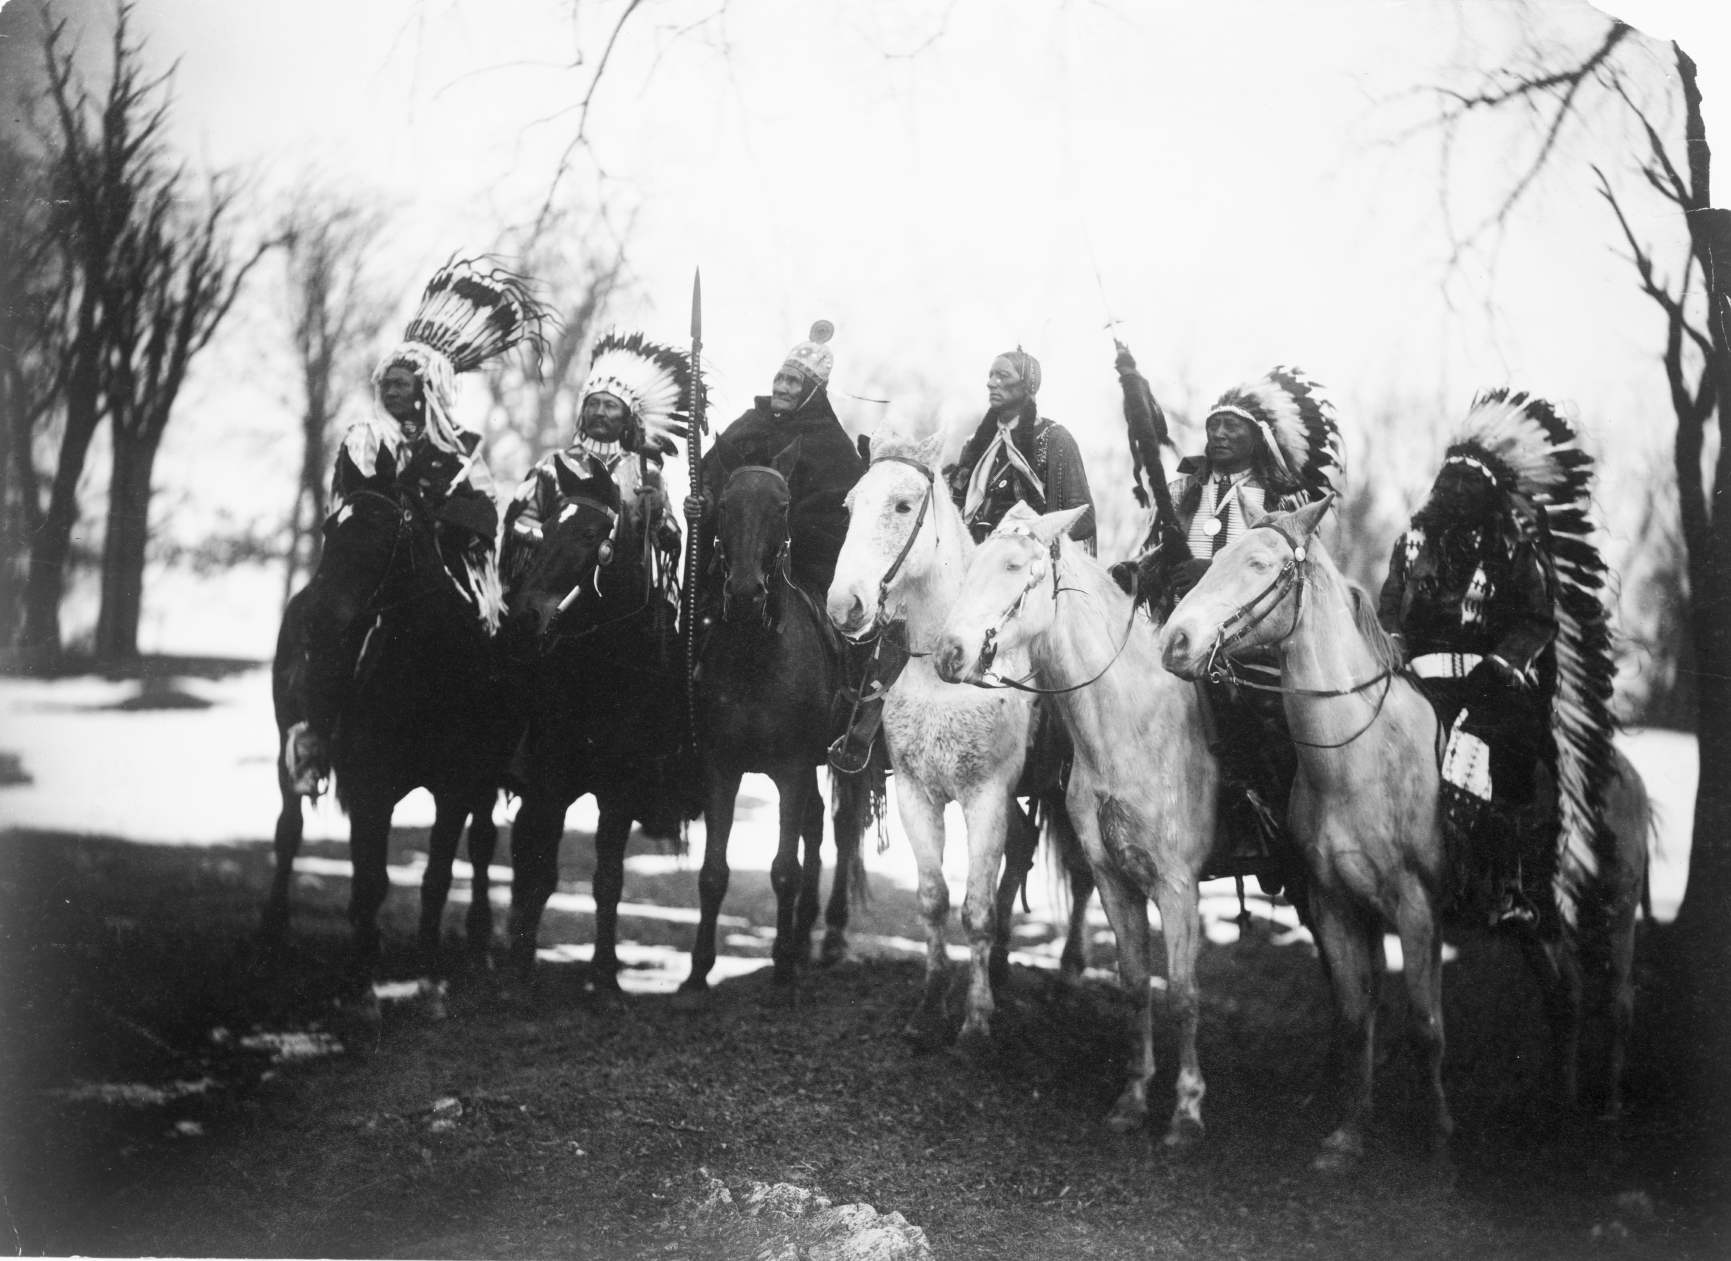 http://upload.wikimedia.org/wikipedia/commons/5/50/Six_tribal_leaders.png